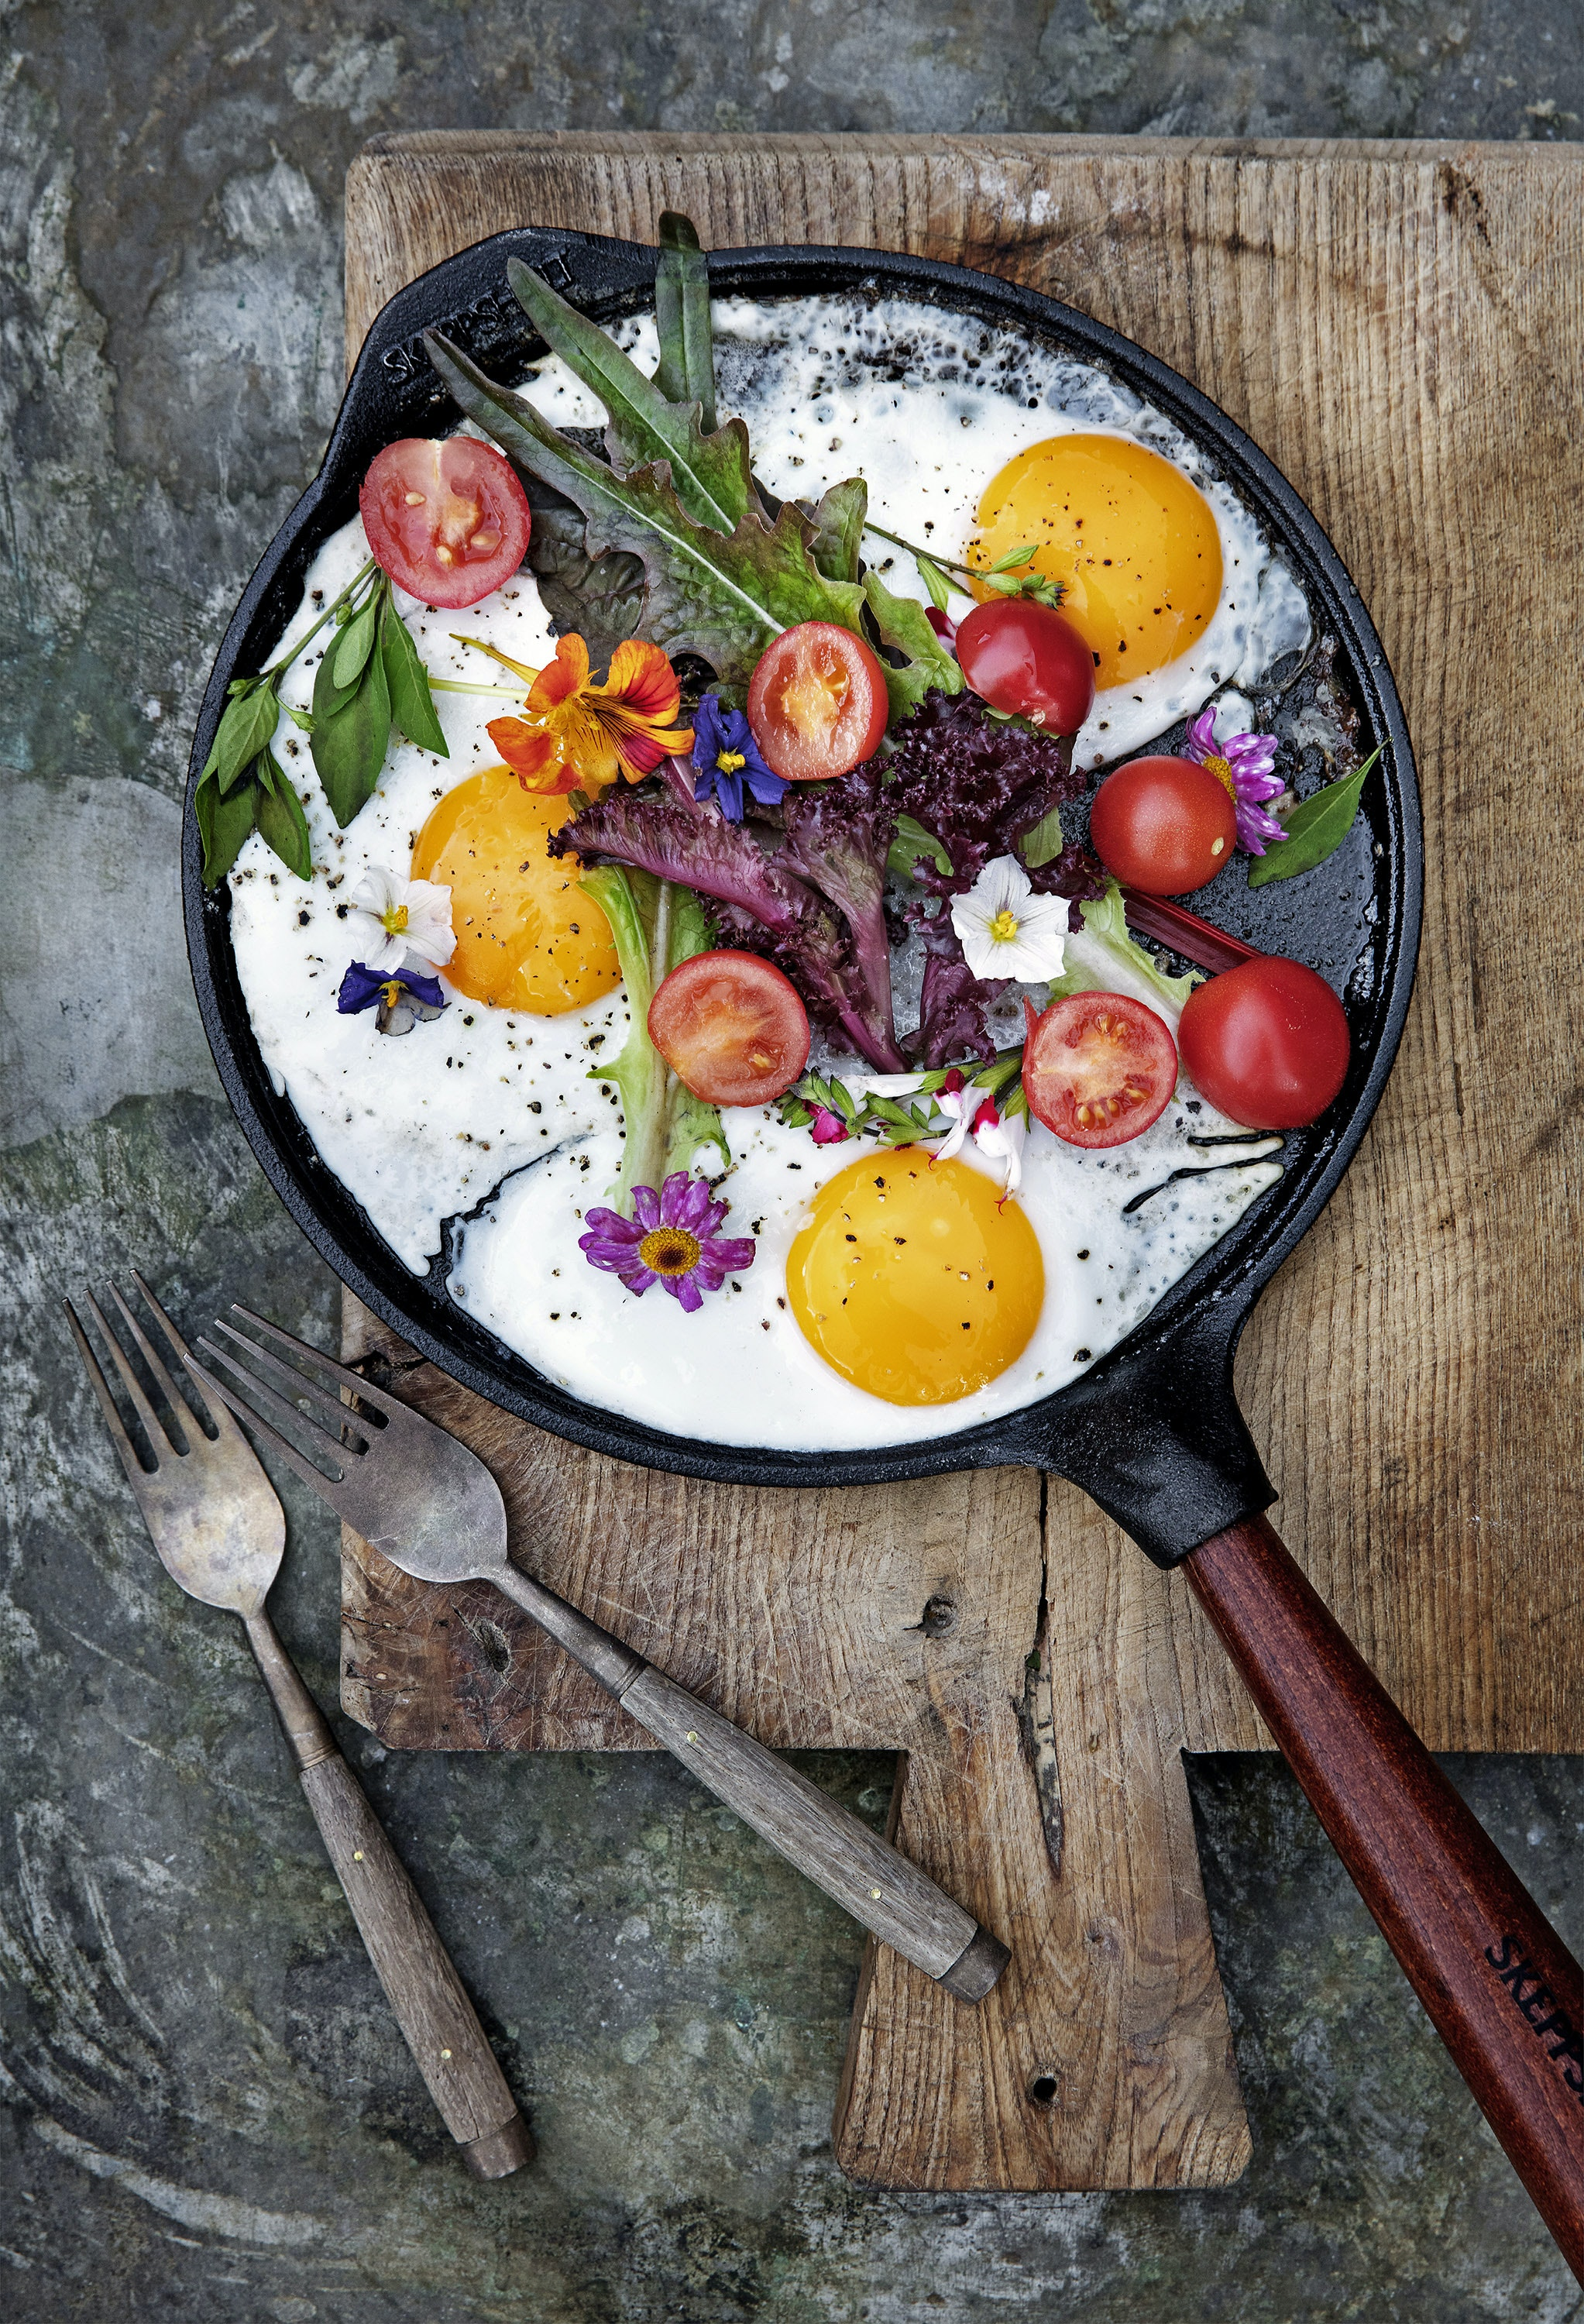 Helbæk has written four cookbooks focused on natural eating.